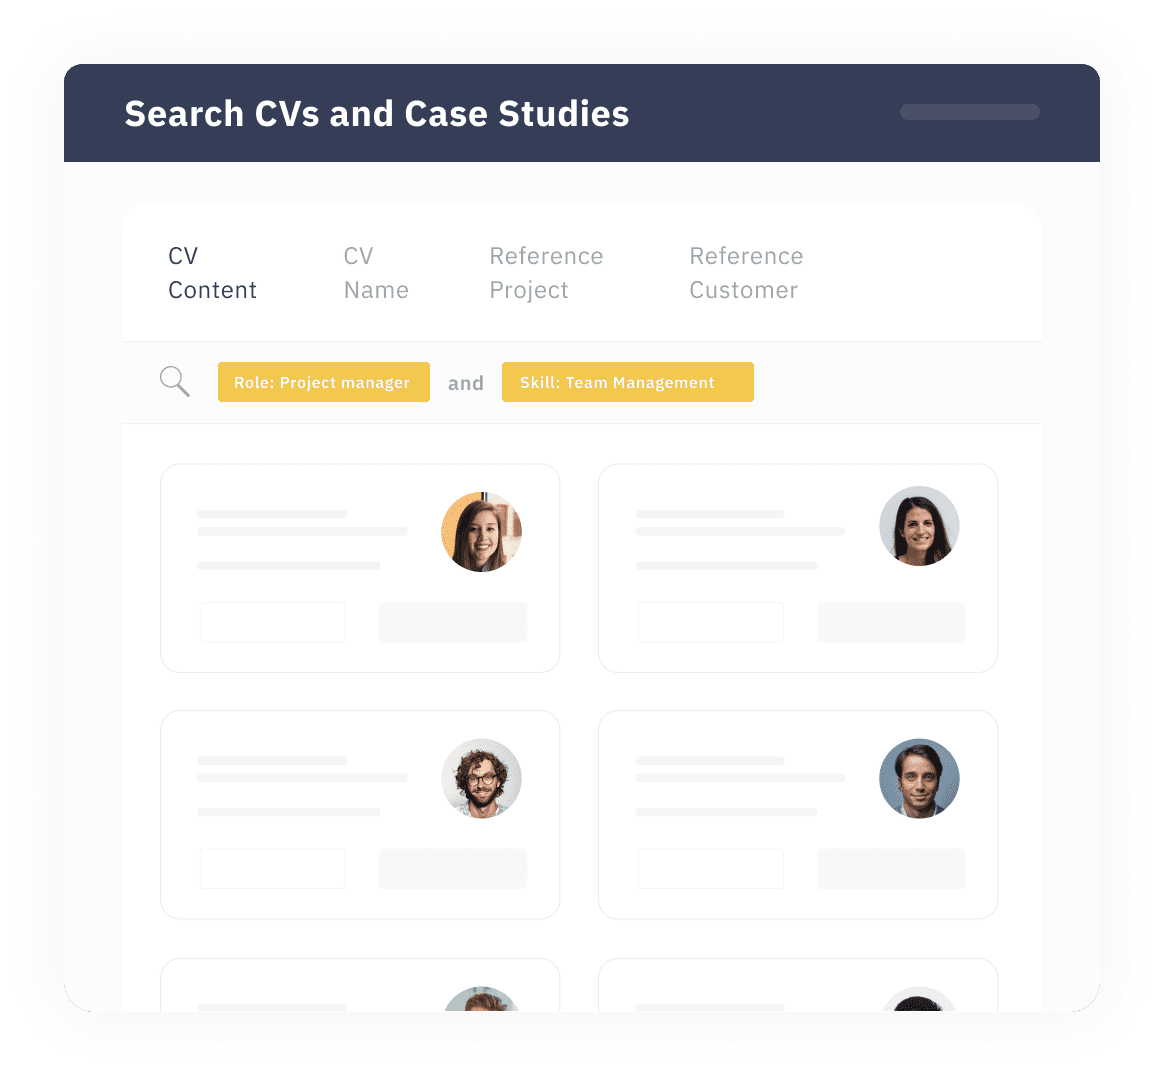 Search CVs and Case studies